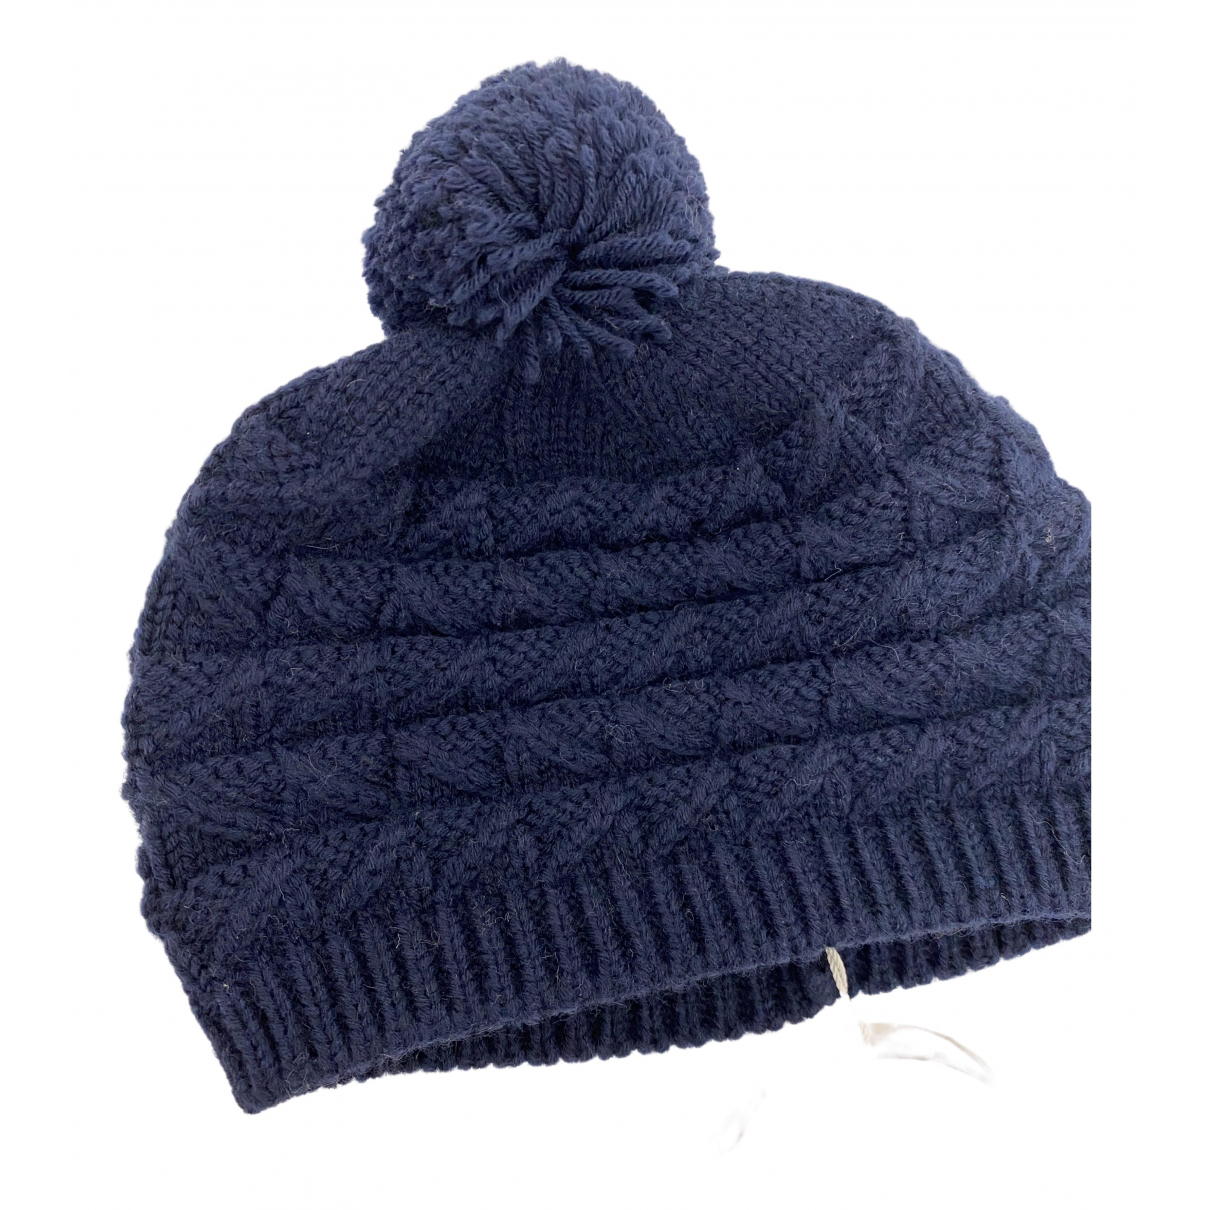 Bonnet A Pompon N Navy Wool hat & Gloves for Kids N